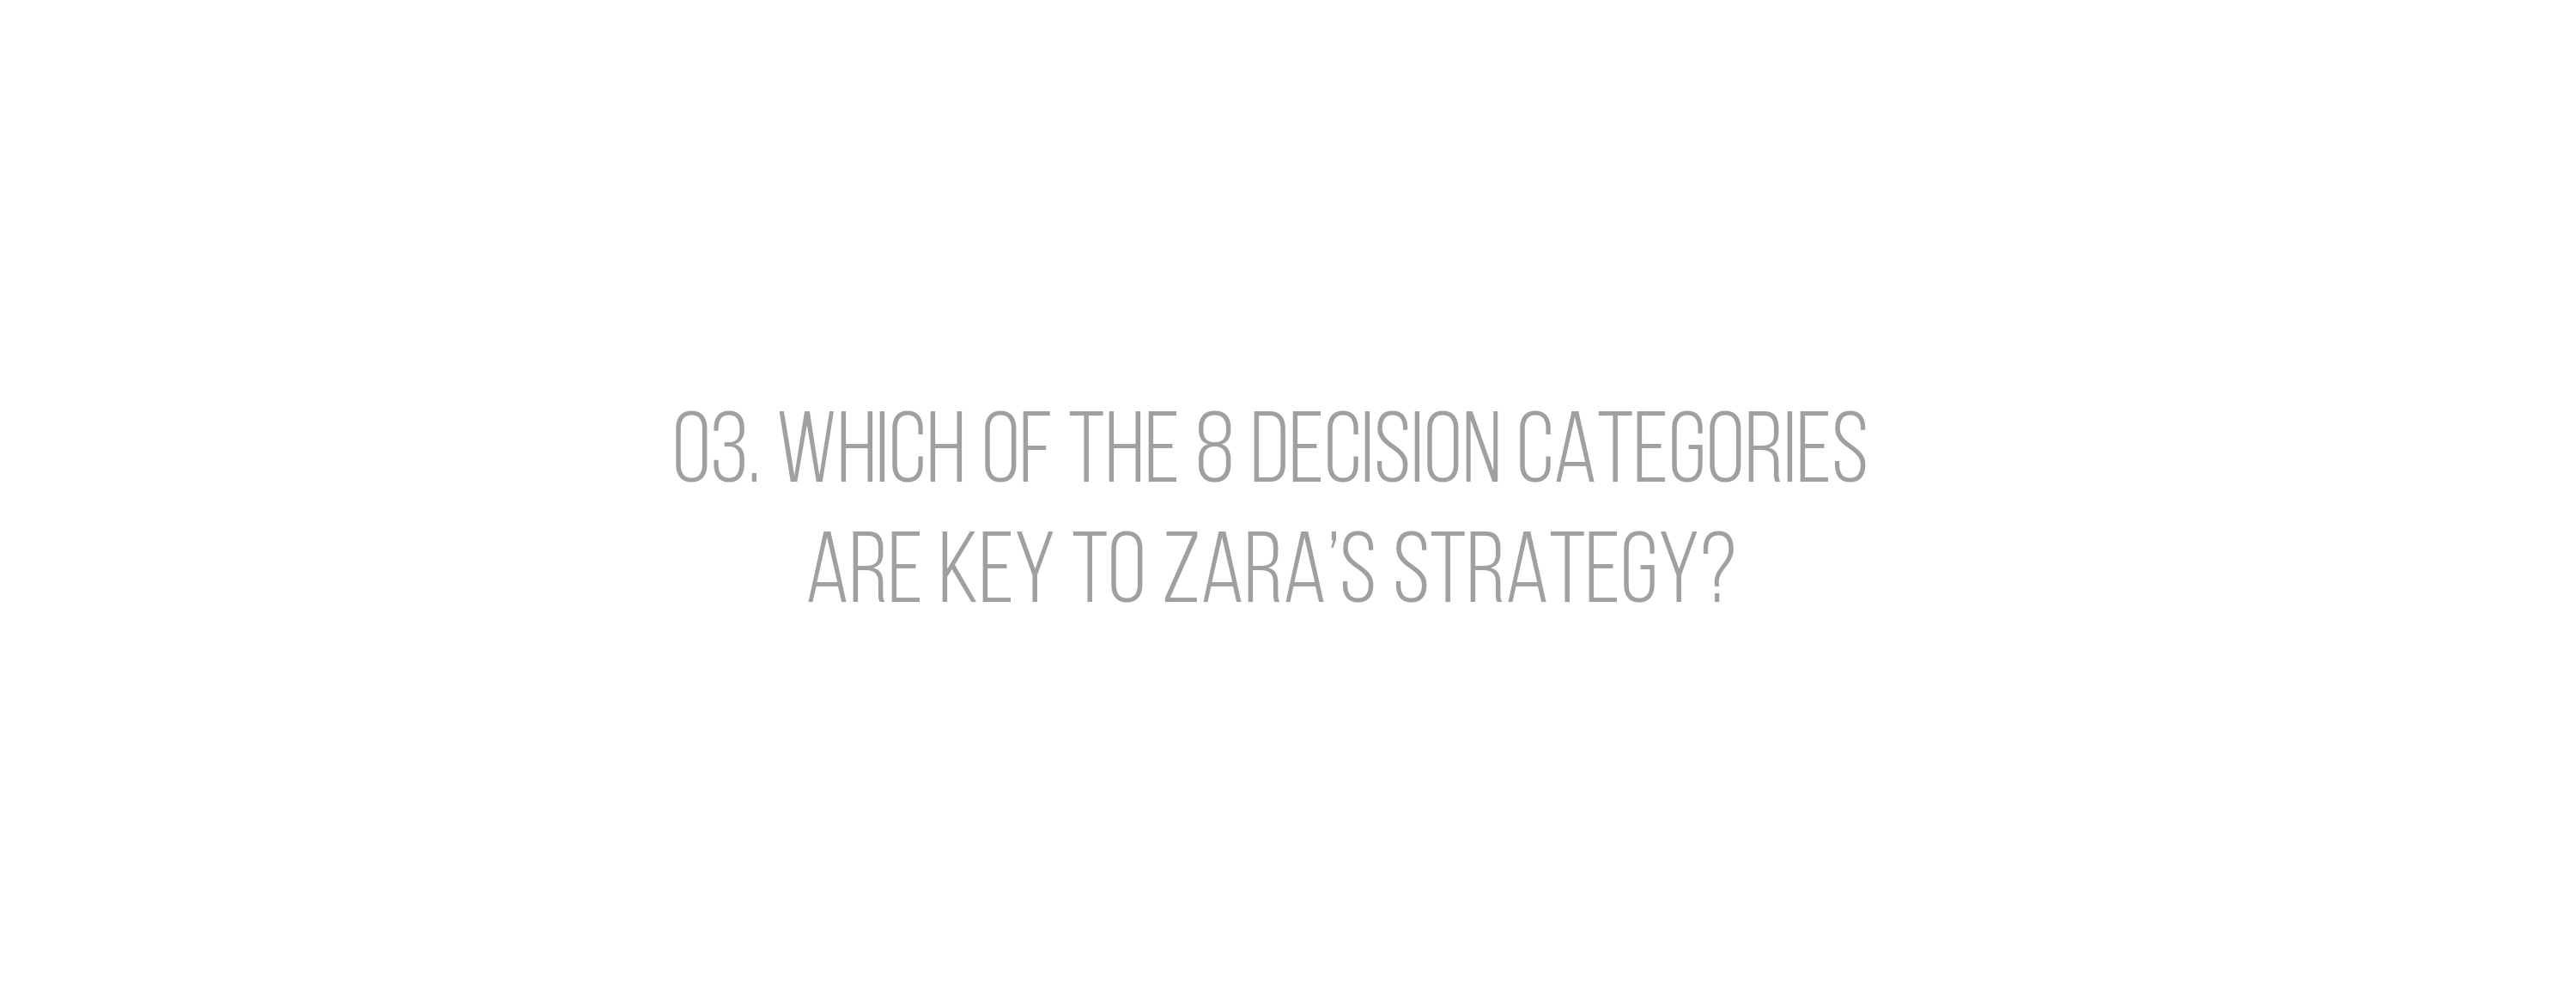 zara case study operations strategy on behance